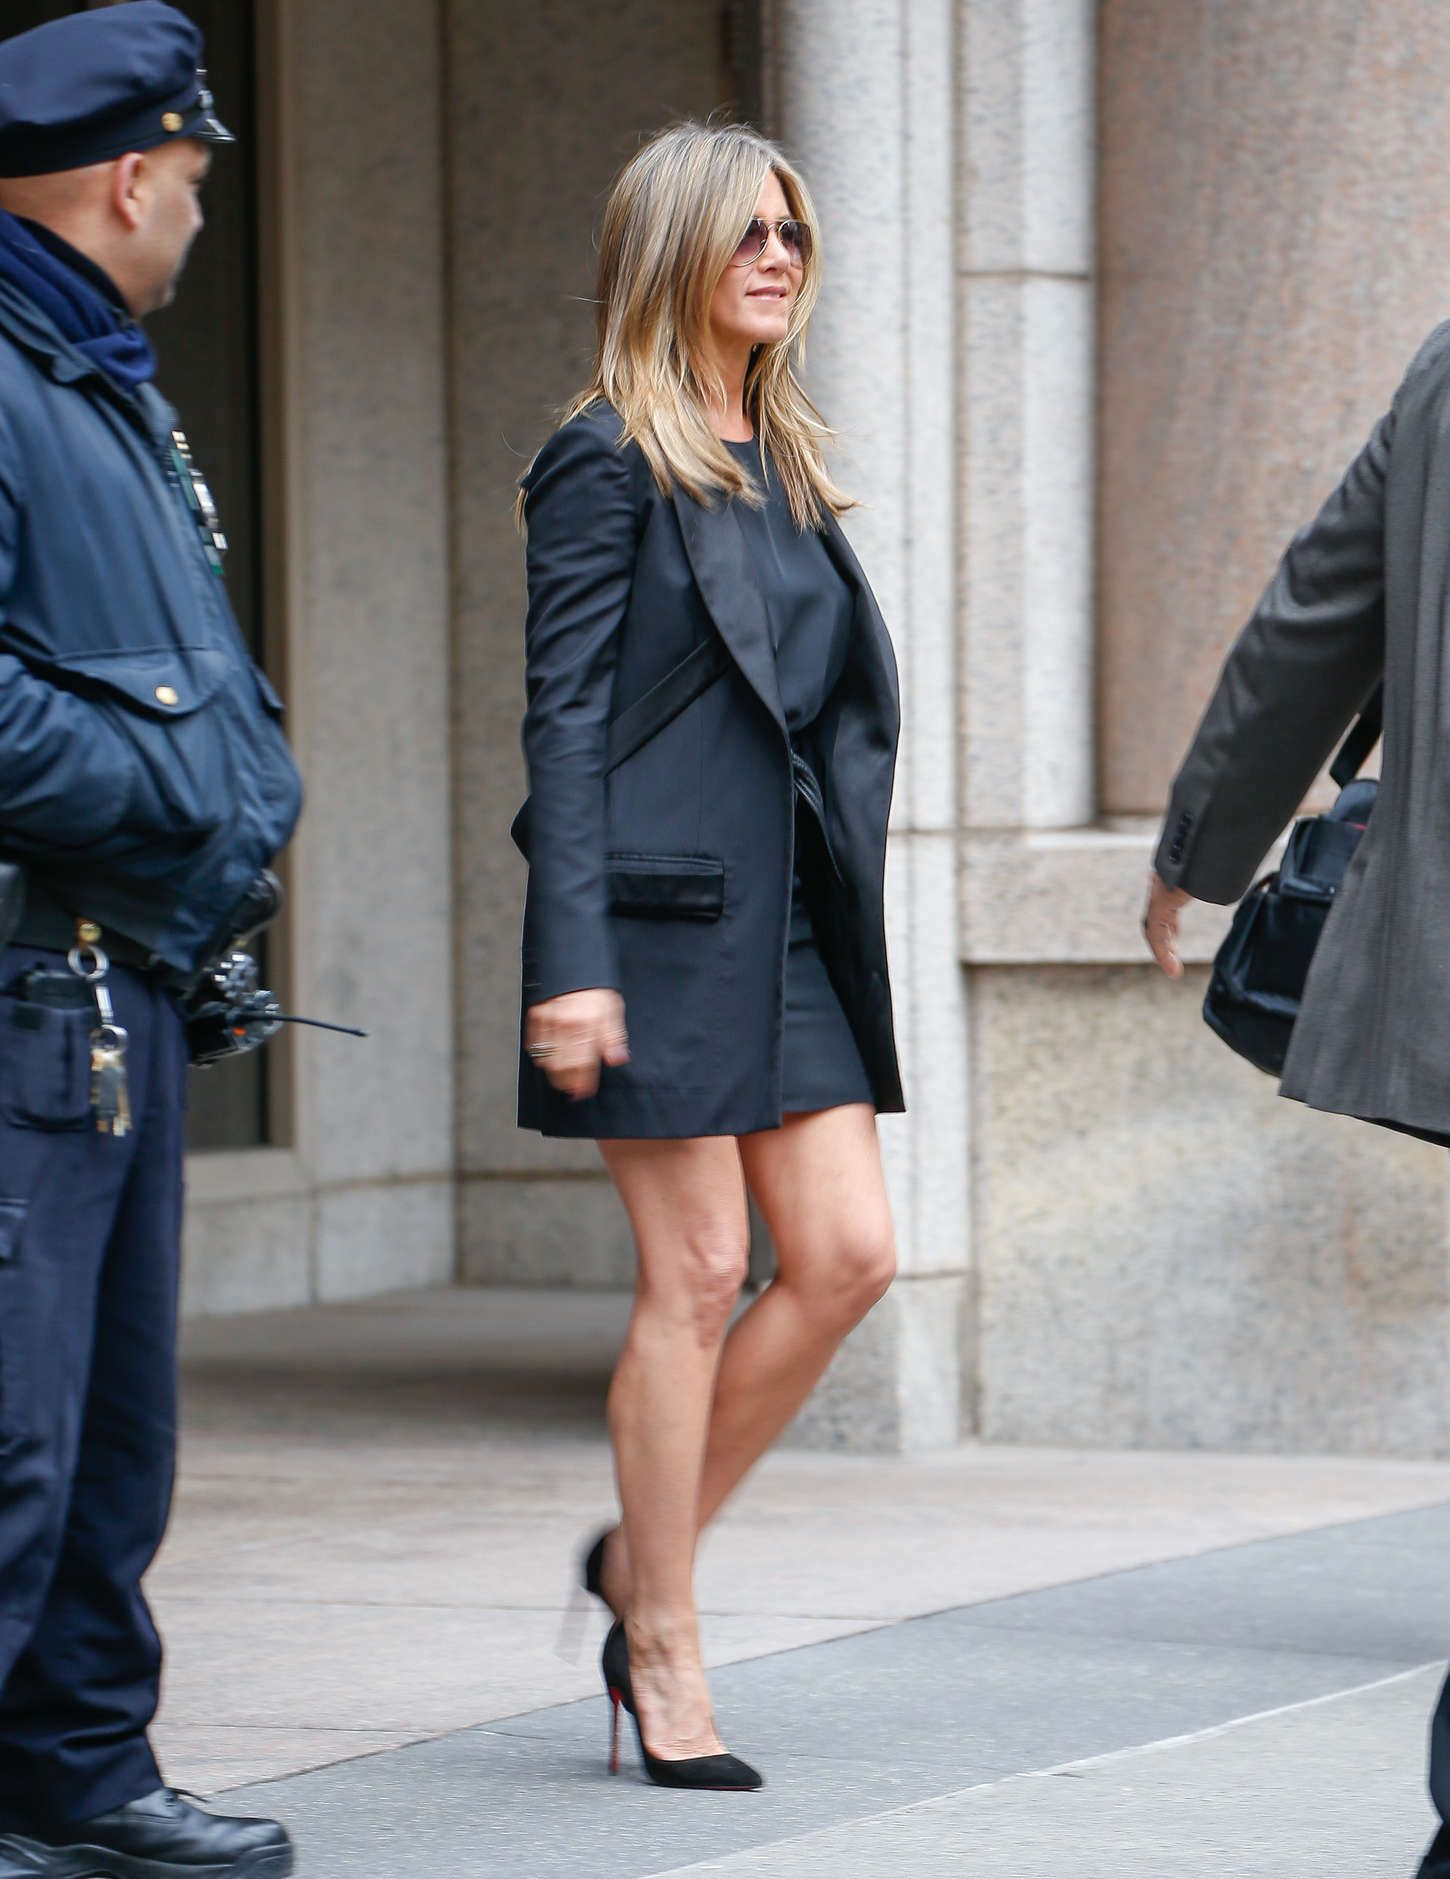 jennifer aniston street style - Google Search | Fashion ...